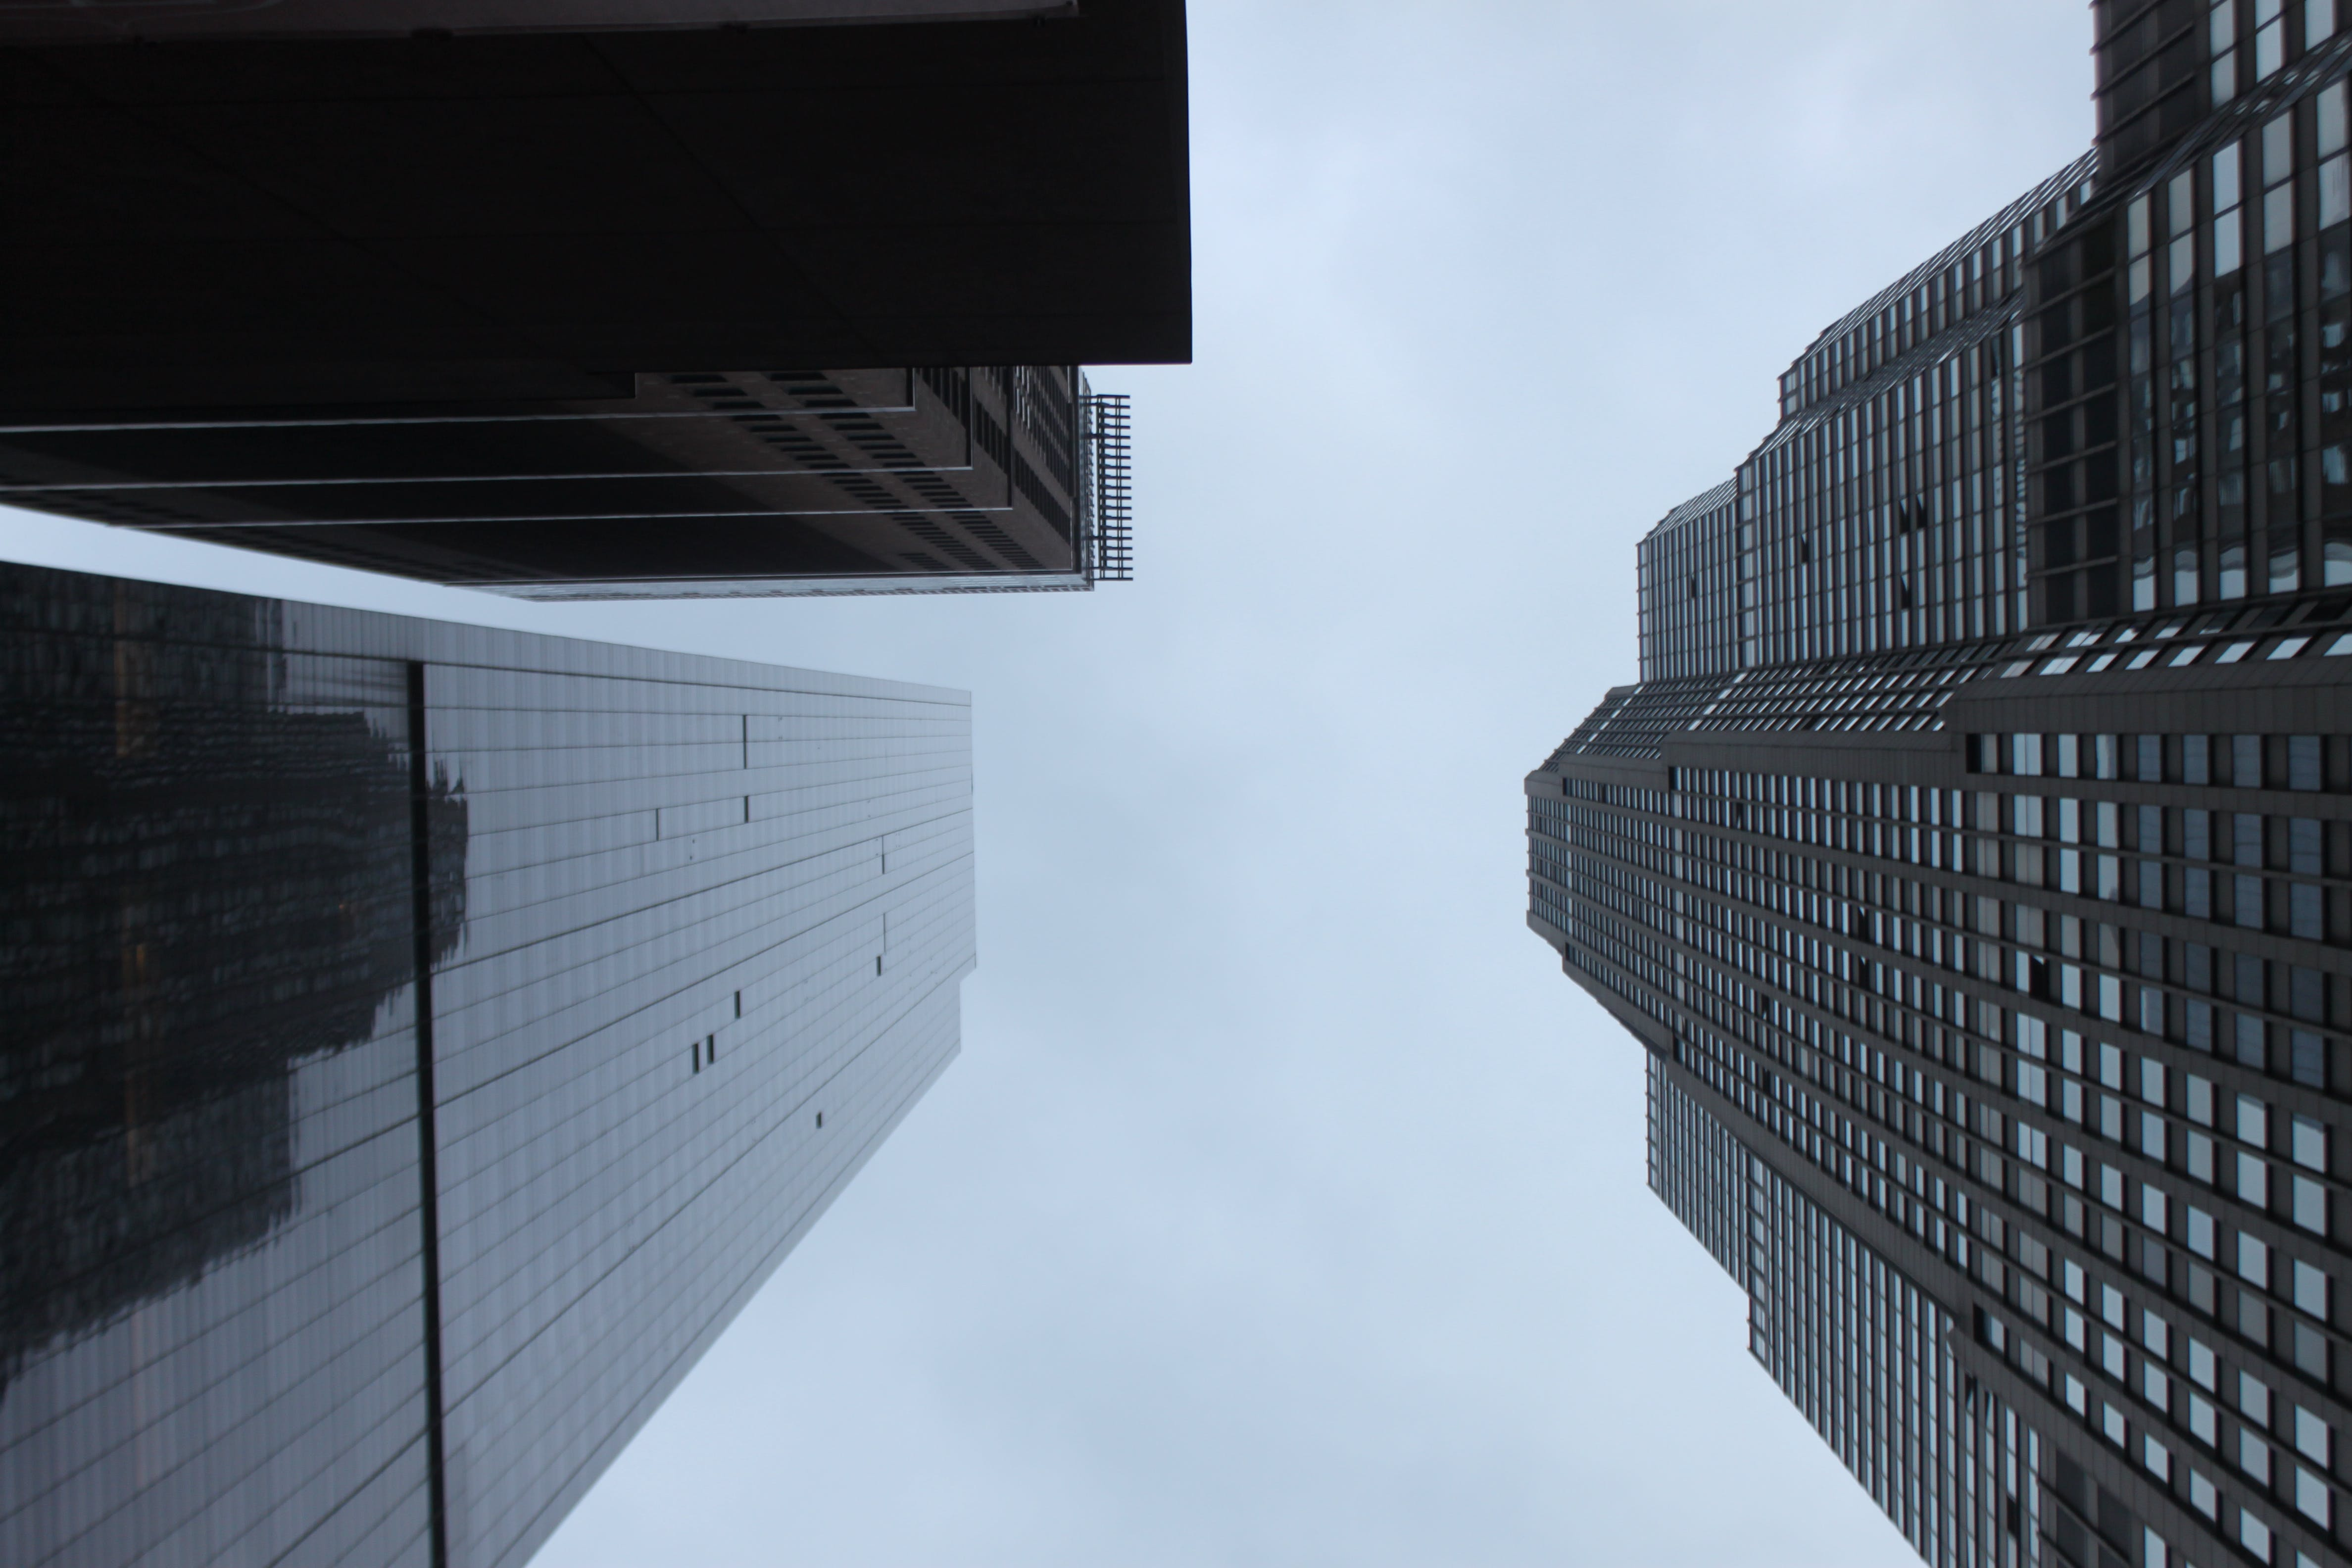 Free stock photo of sky, buildings, skyscrapers, architecture